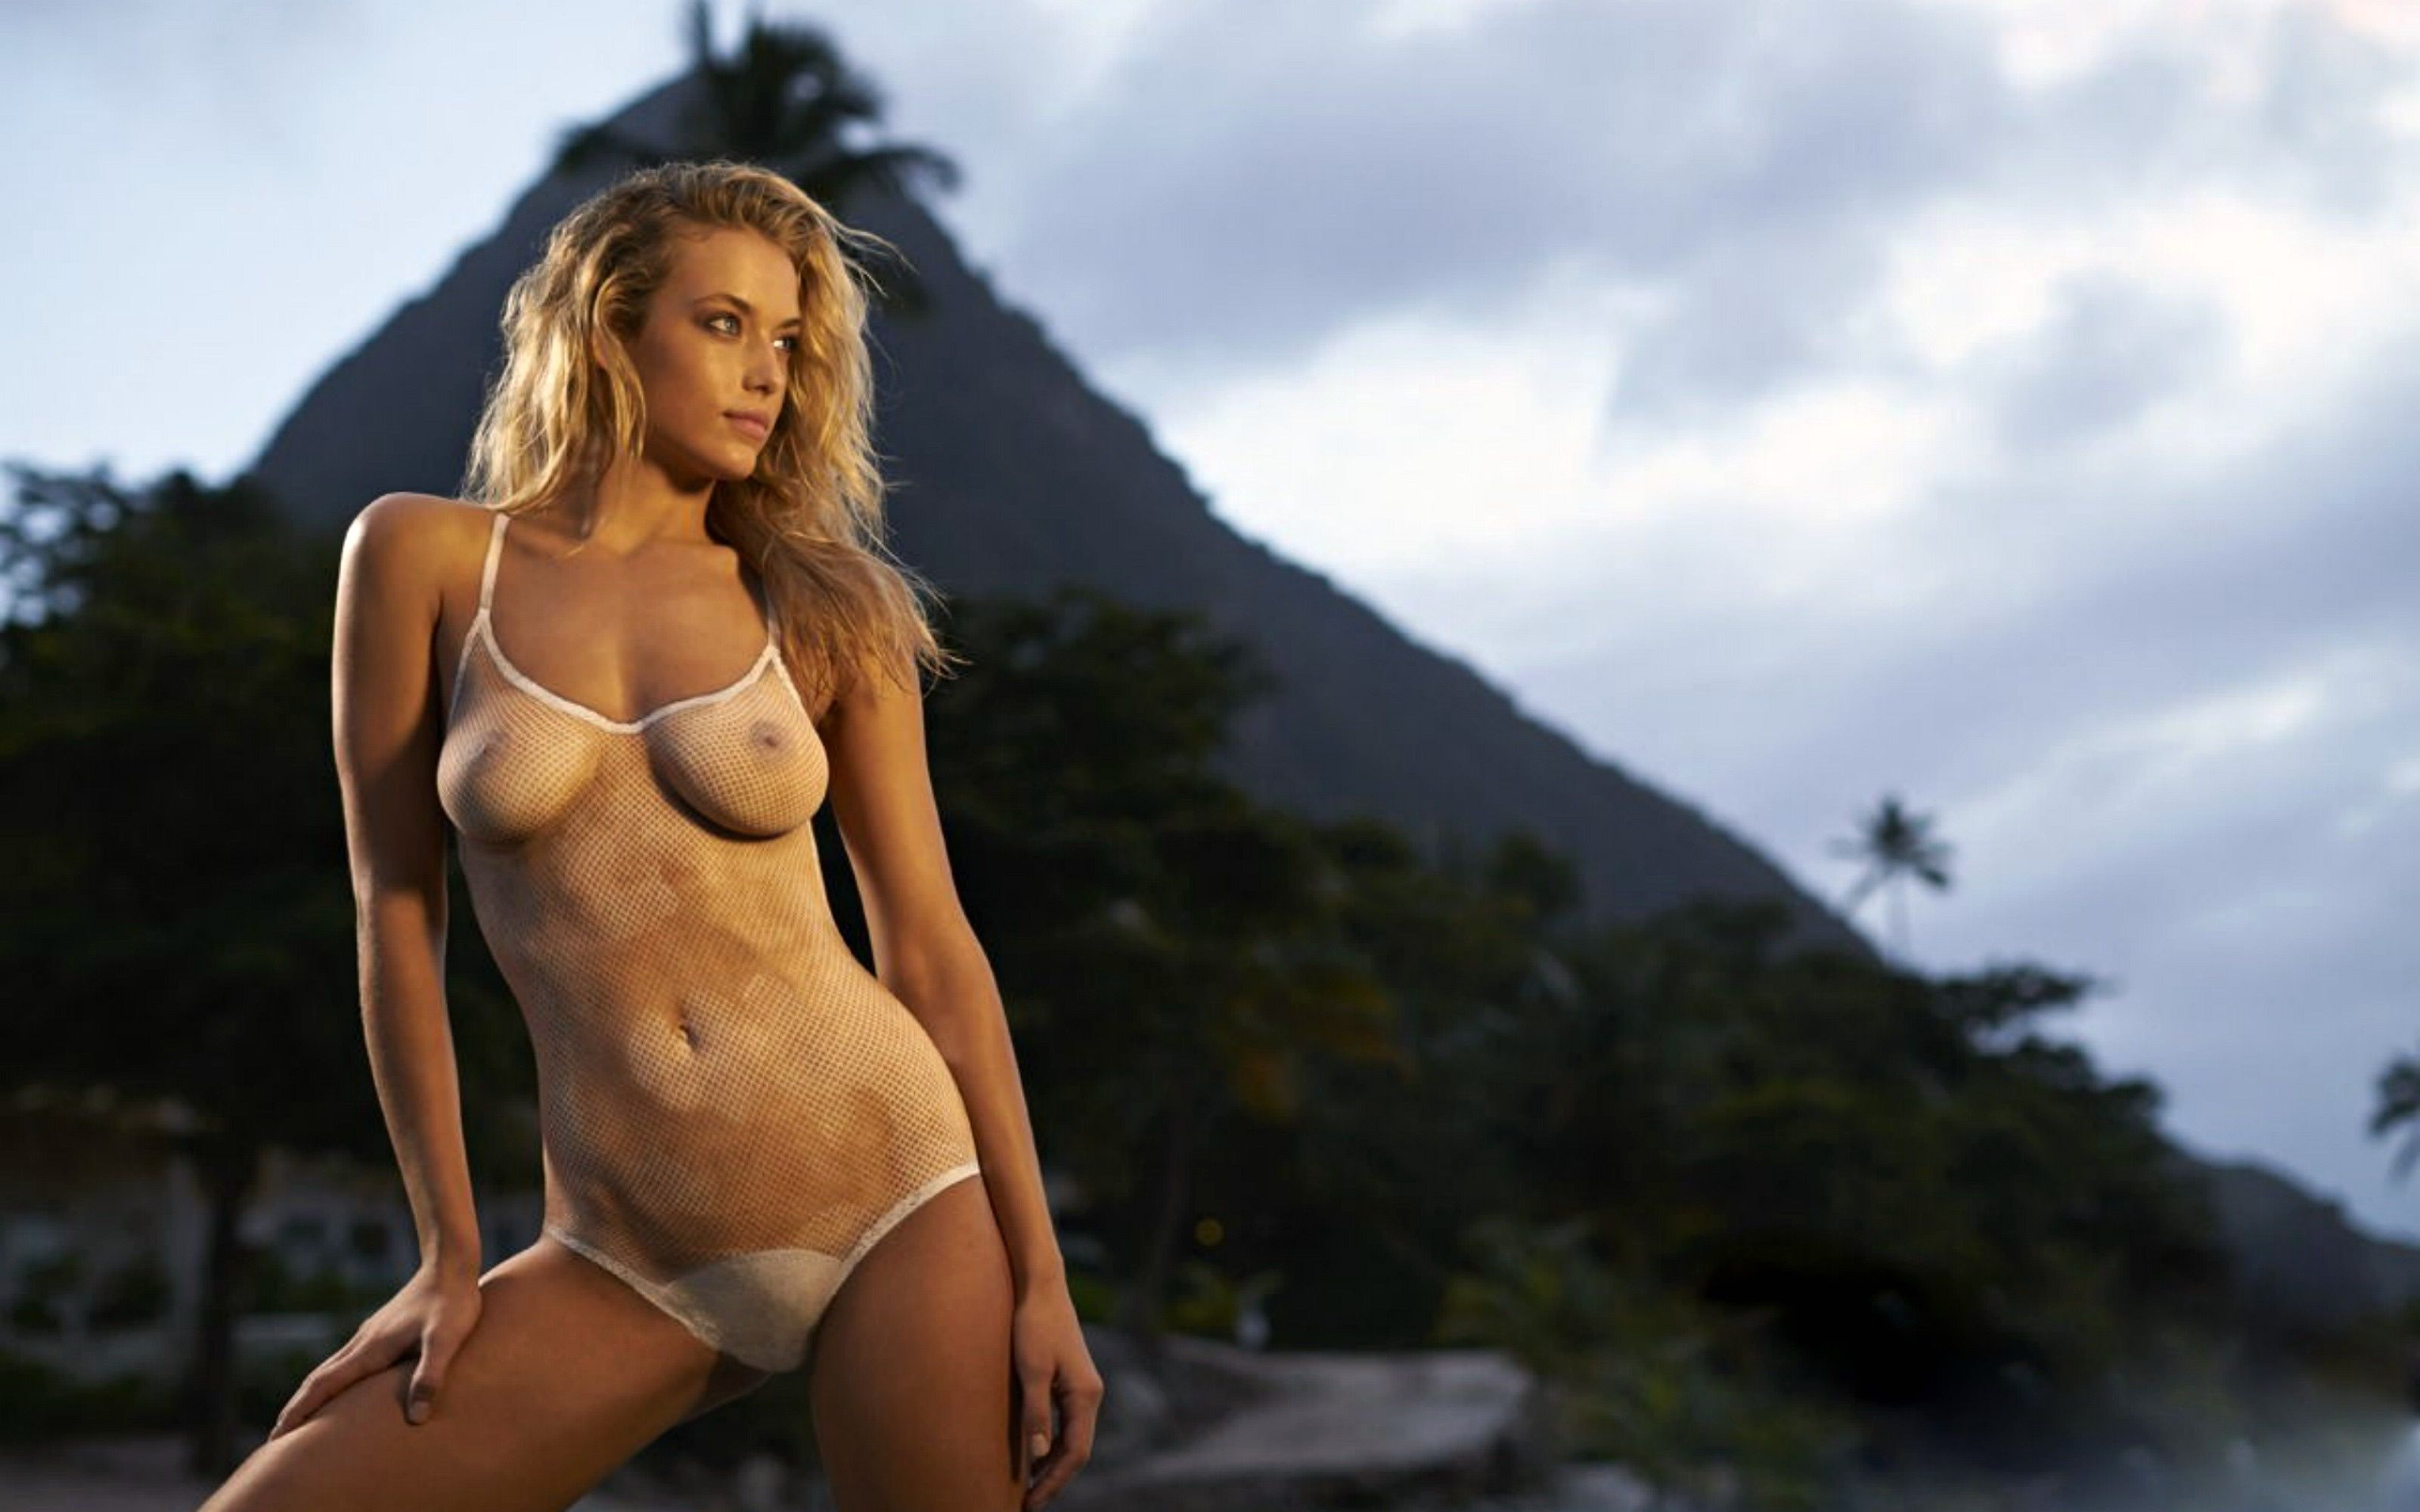 sports-illustrated-swimsuit-models-naked